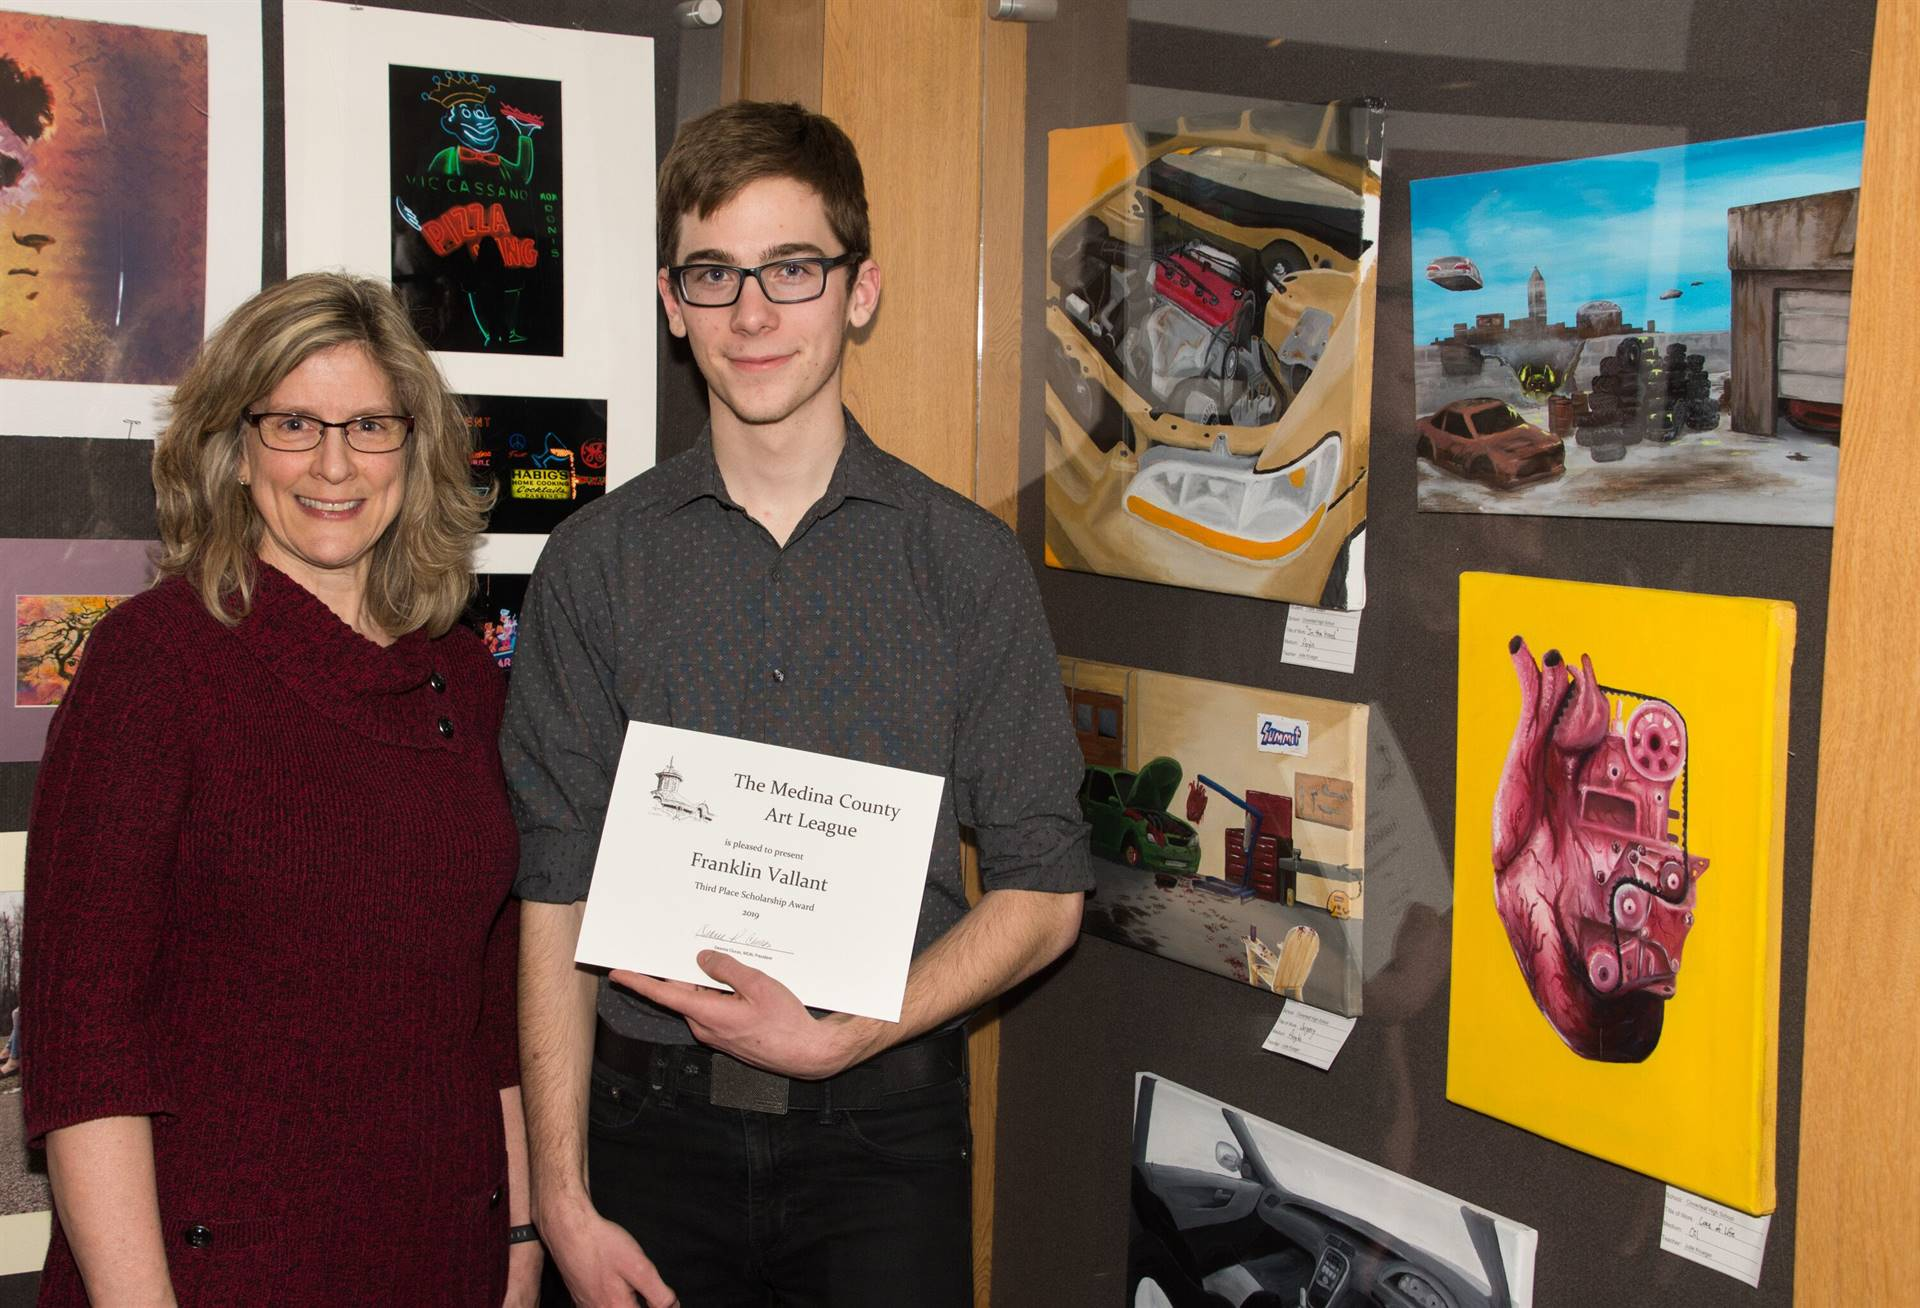 Frank Vallant, Third Place 2019 MCAL Scholarship Winner, with Julie Krueger, art teacher